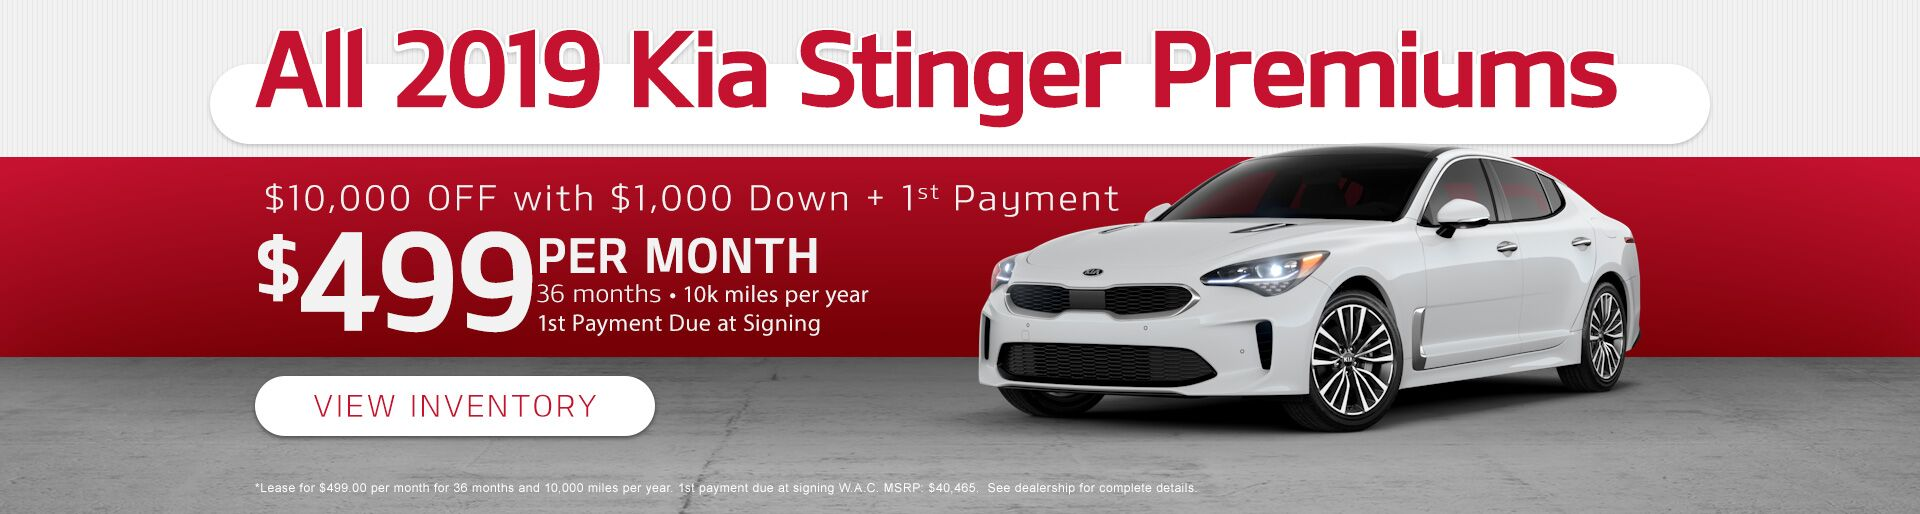 All 2019 Kia Stinger Premiums